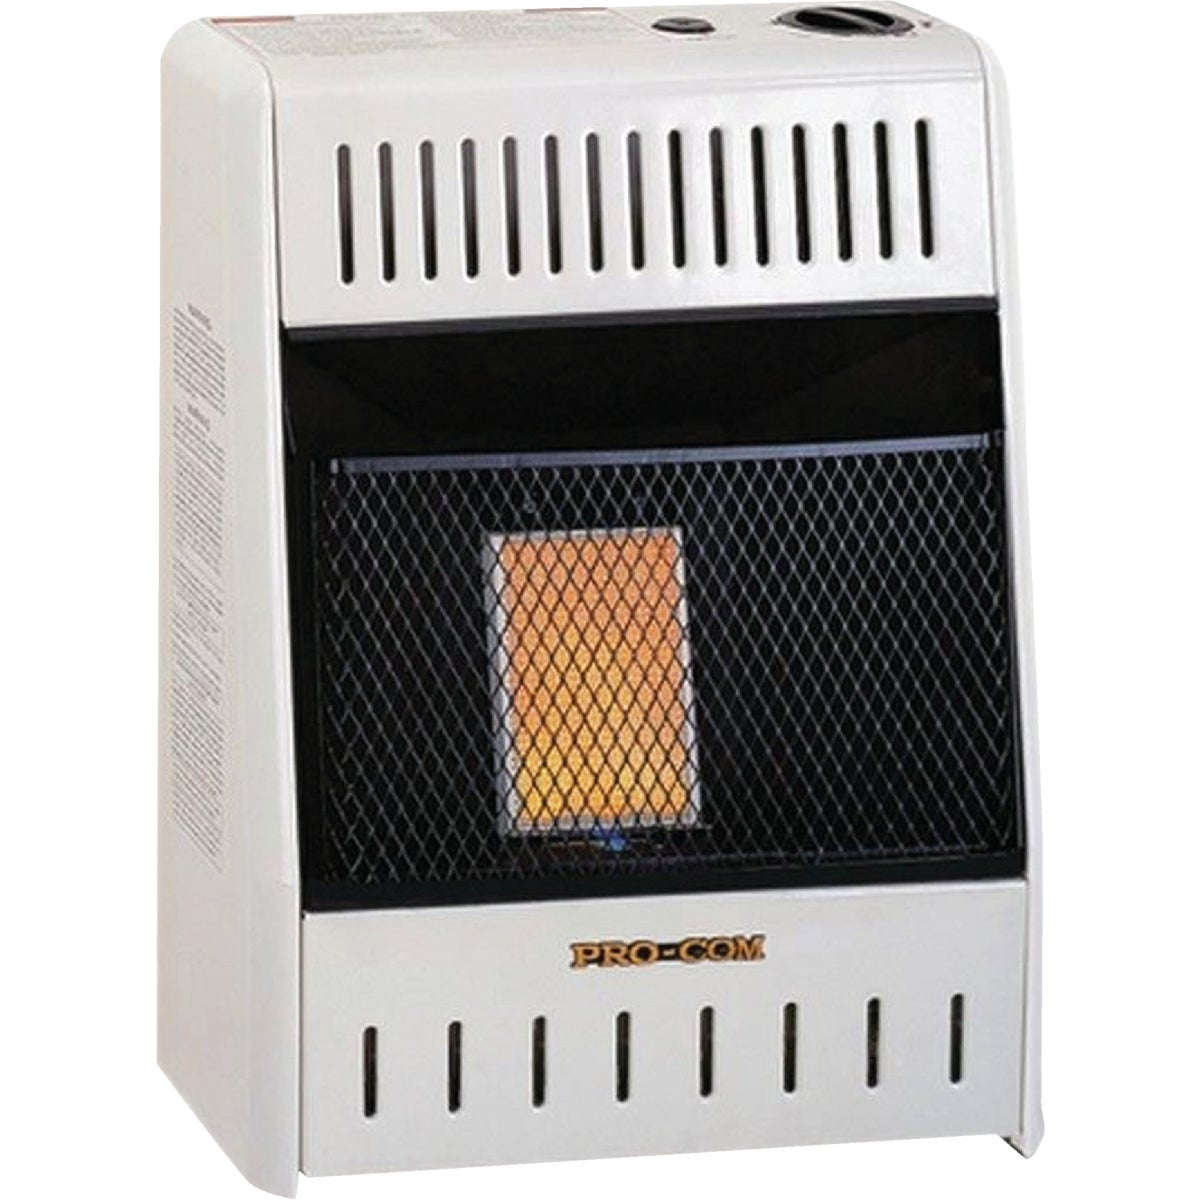 6K IR MAN NG GAS HEATER - KWN109 by World Marketing/Procom